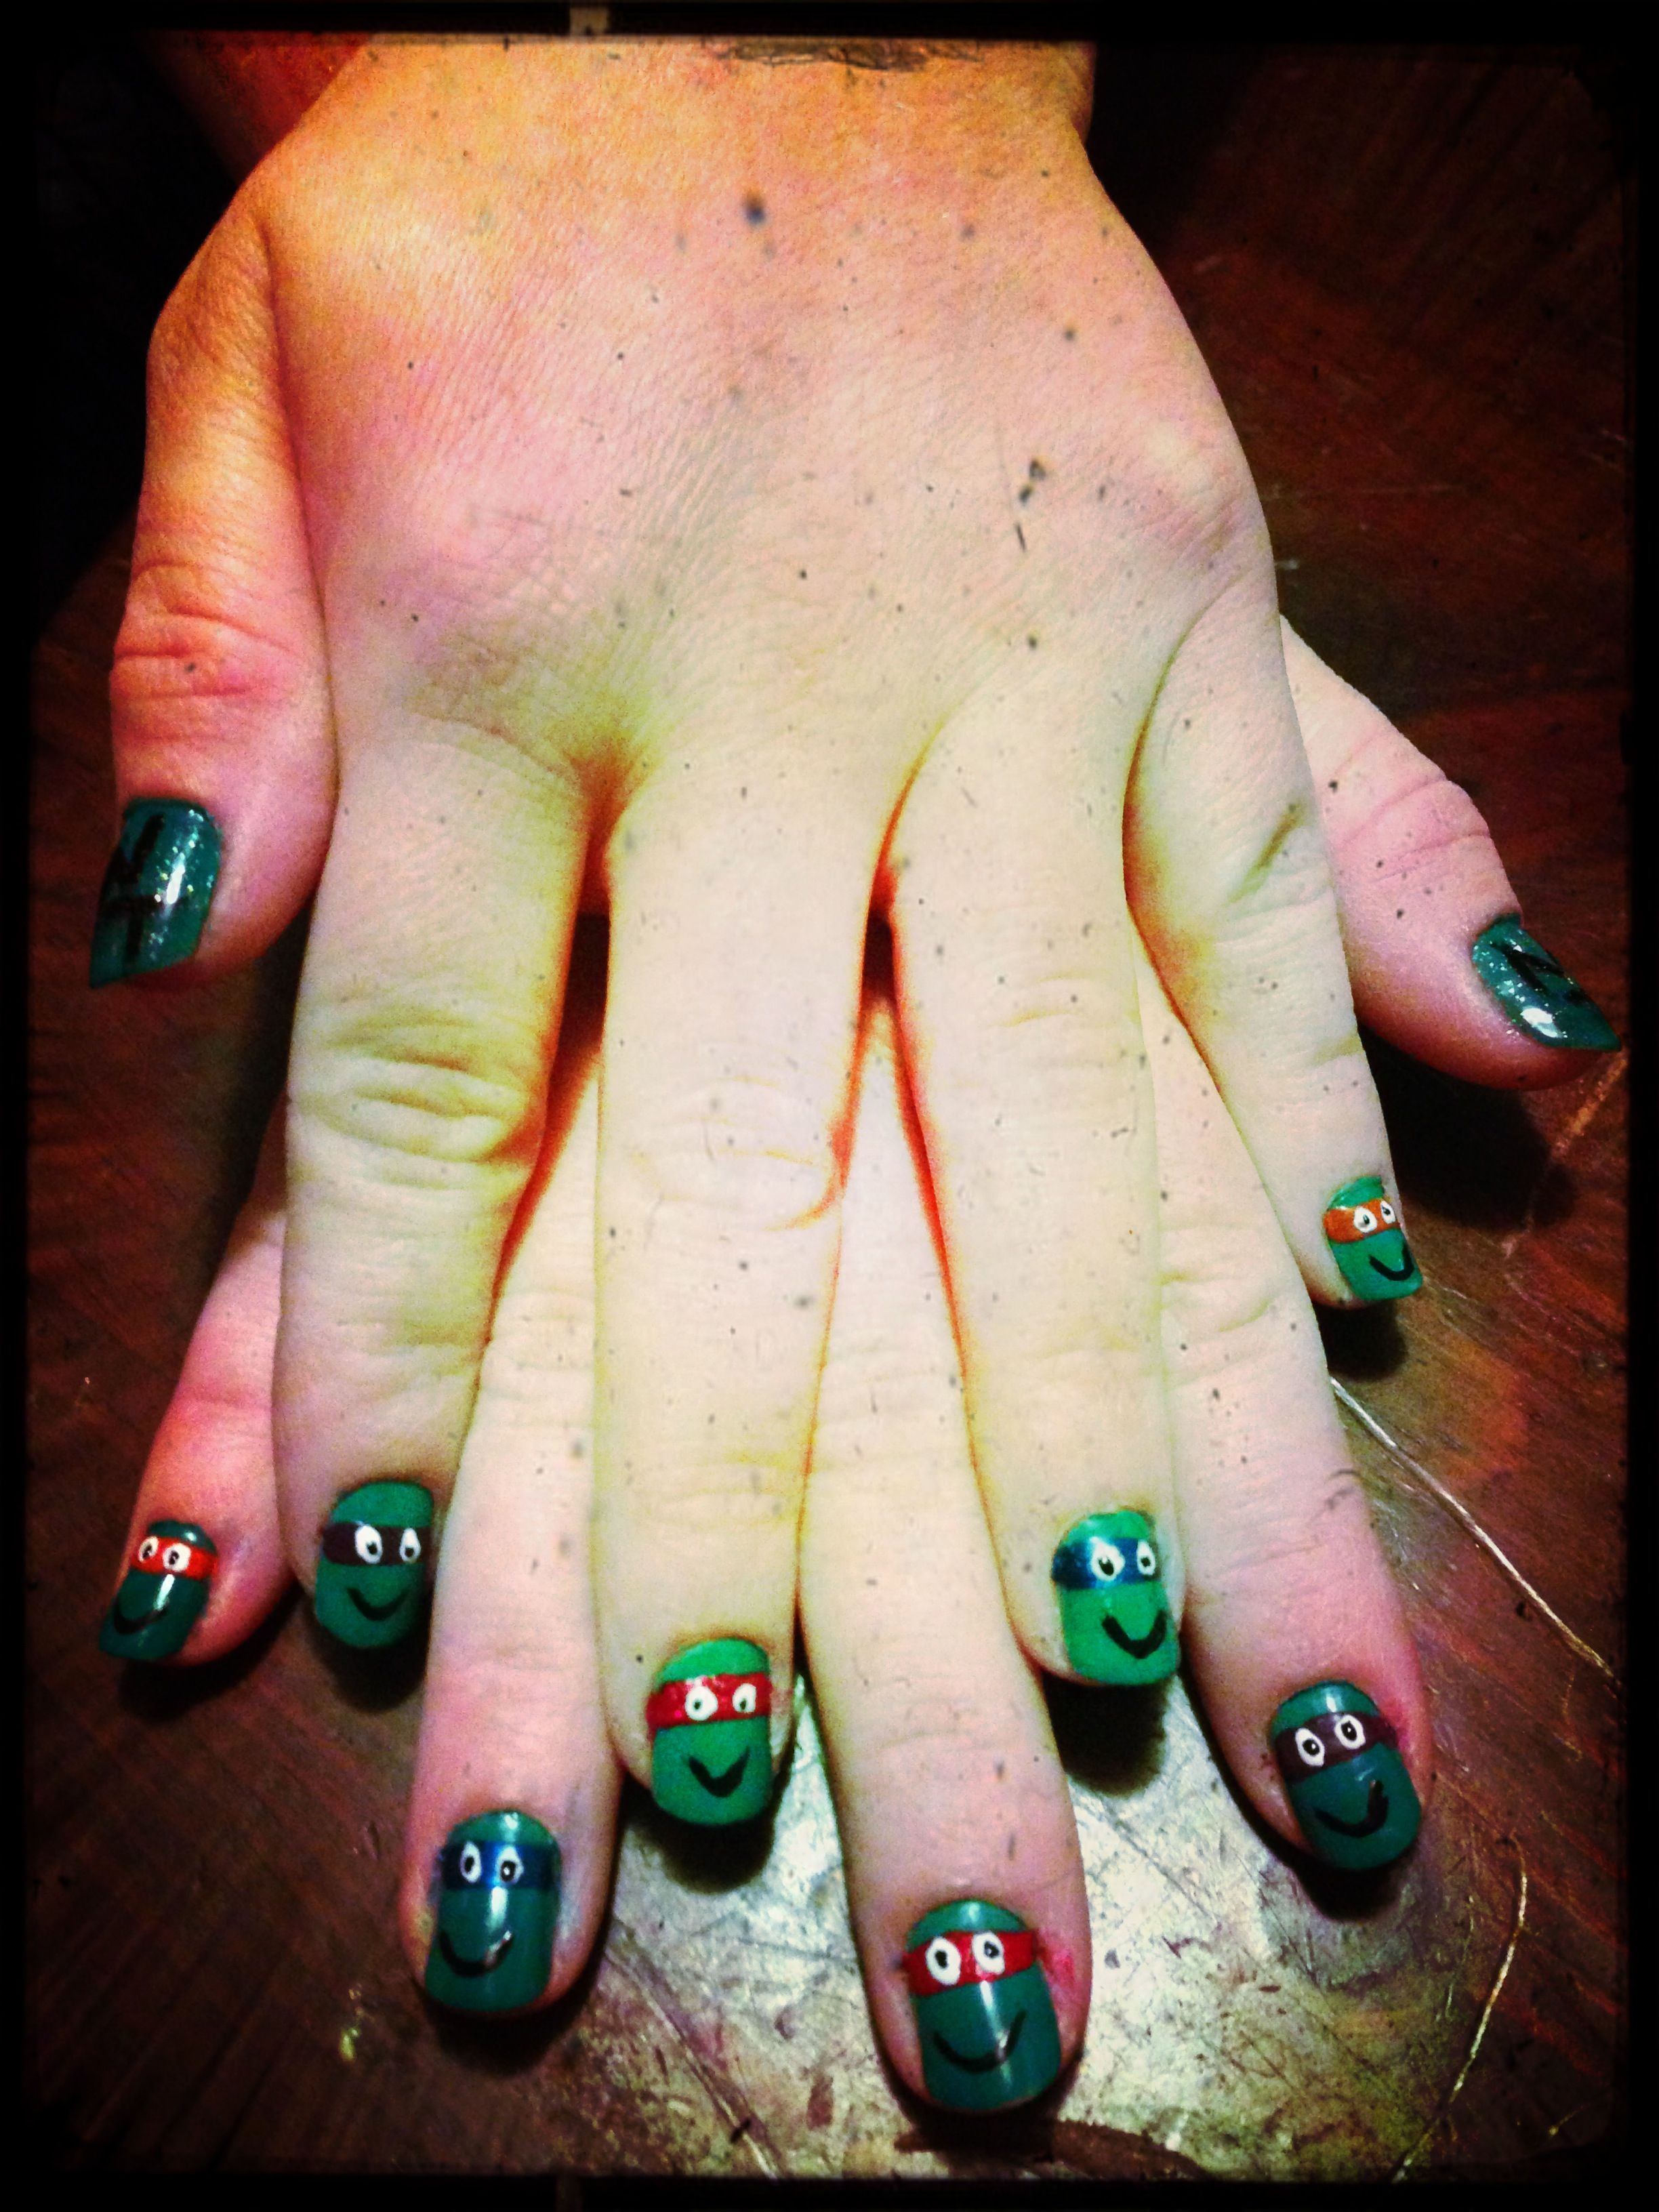 D boy did I luv these nails | Nails | Pinterest